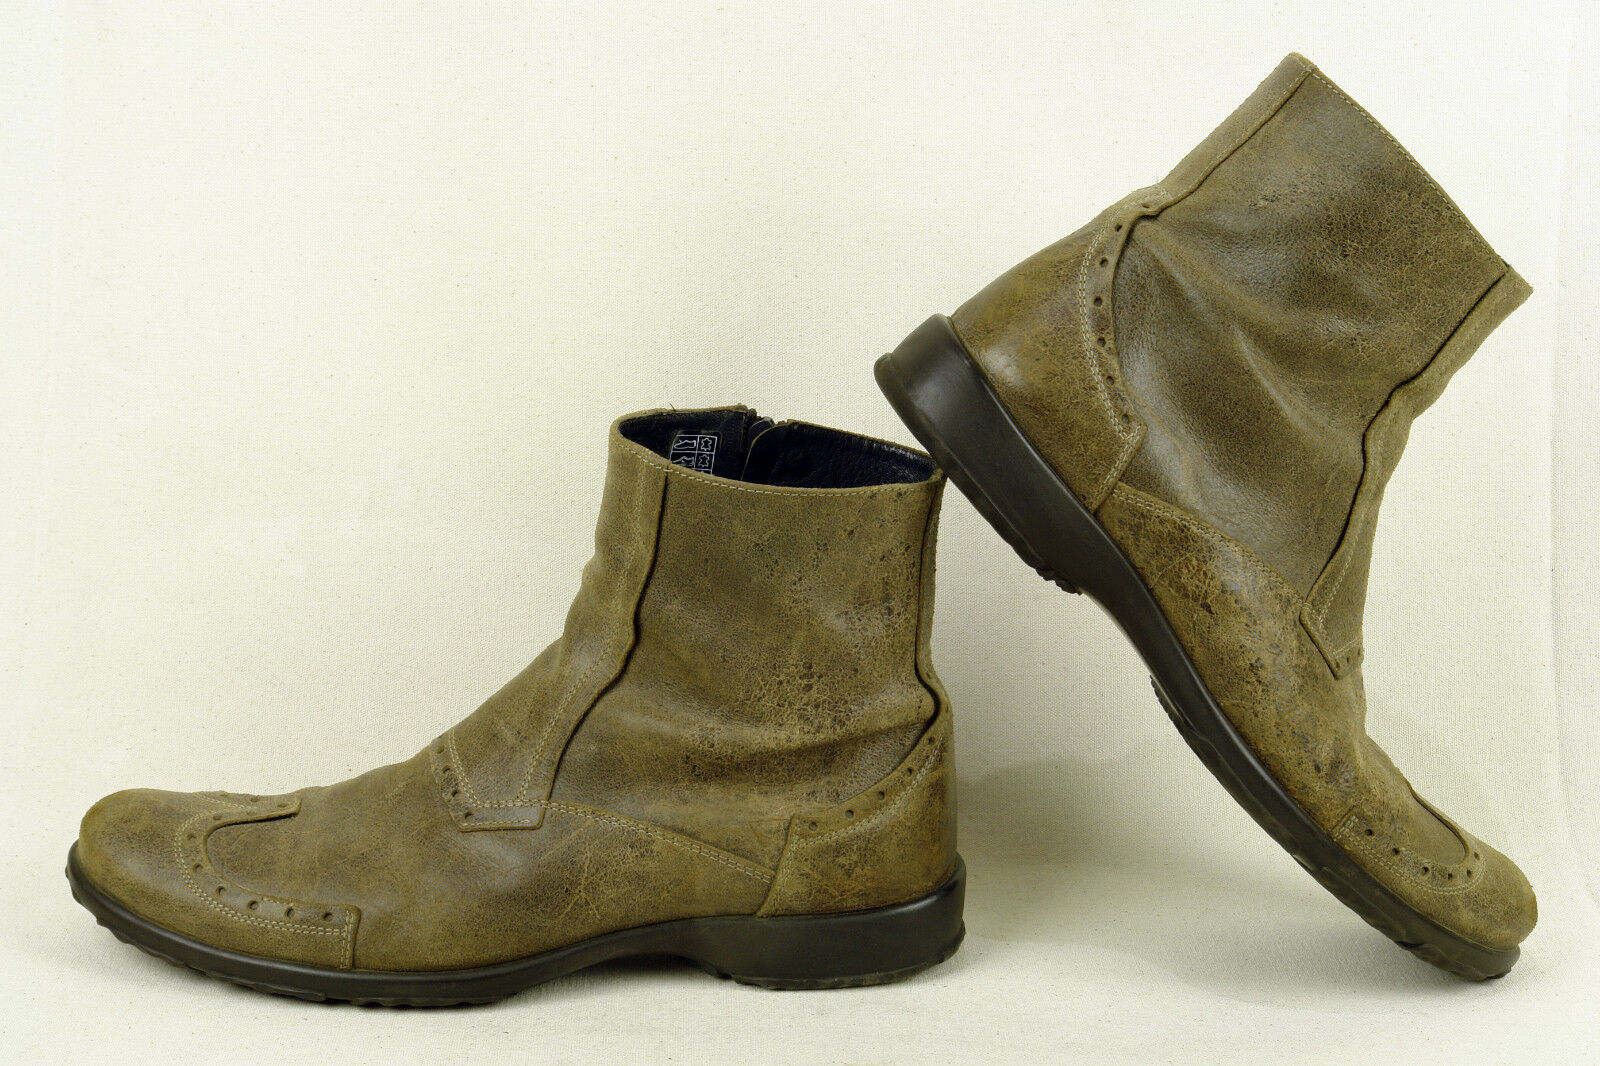 SANDRO CARRA * ITALY * FABULOUS BOOT IN IN BOOT A DUSKY BROWN DISTRESSED * 10 EXCELLENT b53654